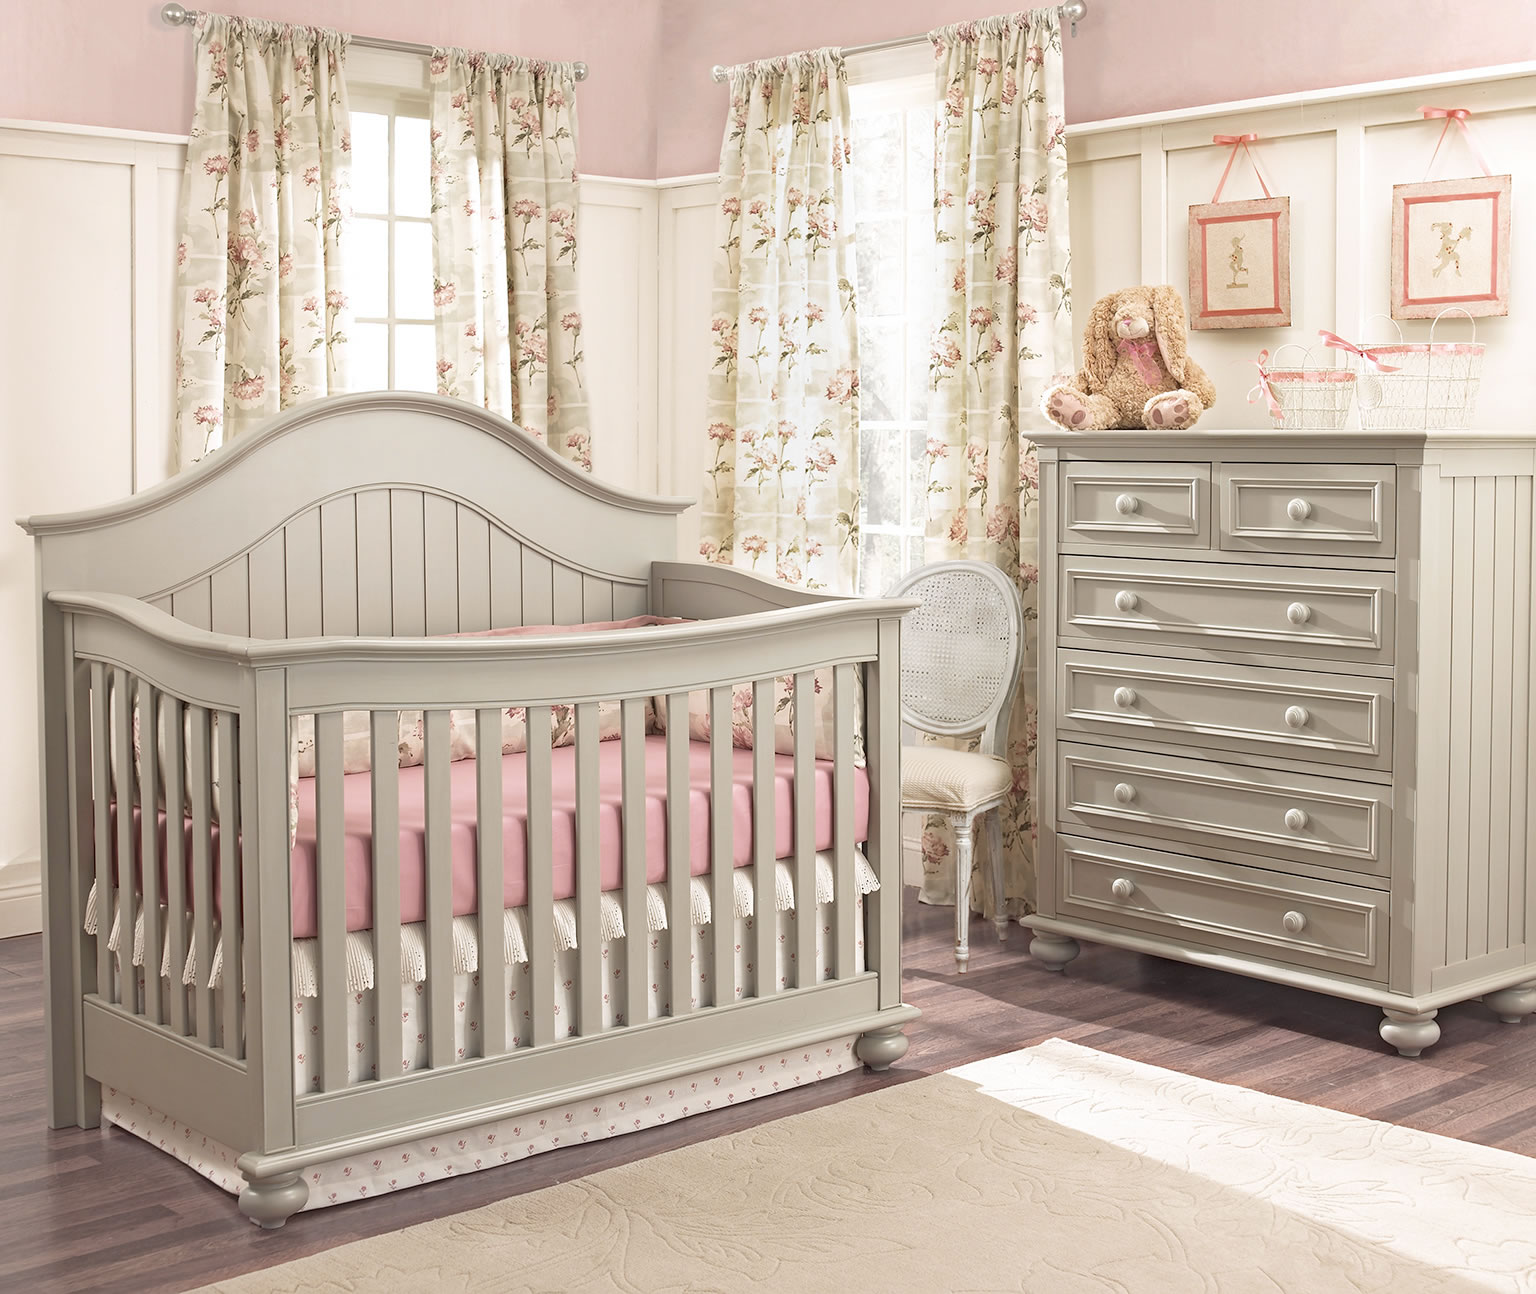 Dark Grey Wooden Munire Crib With Pink Bedding On Wooden Floor Plus White  Carpet Plus Dresser